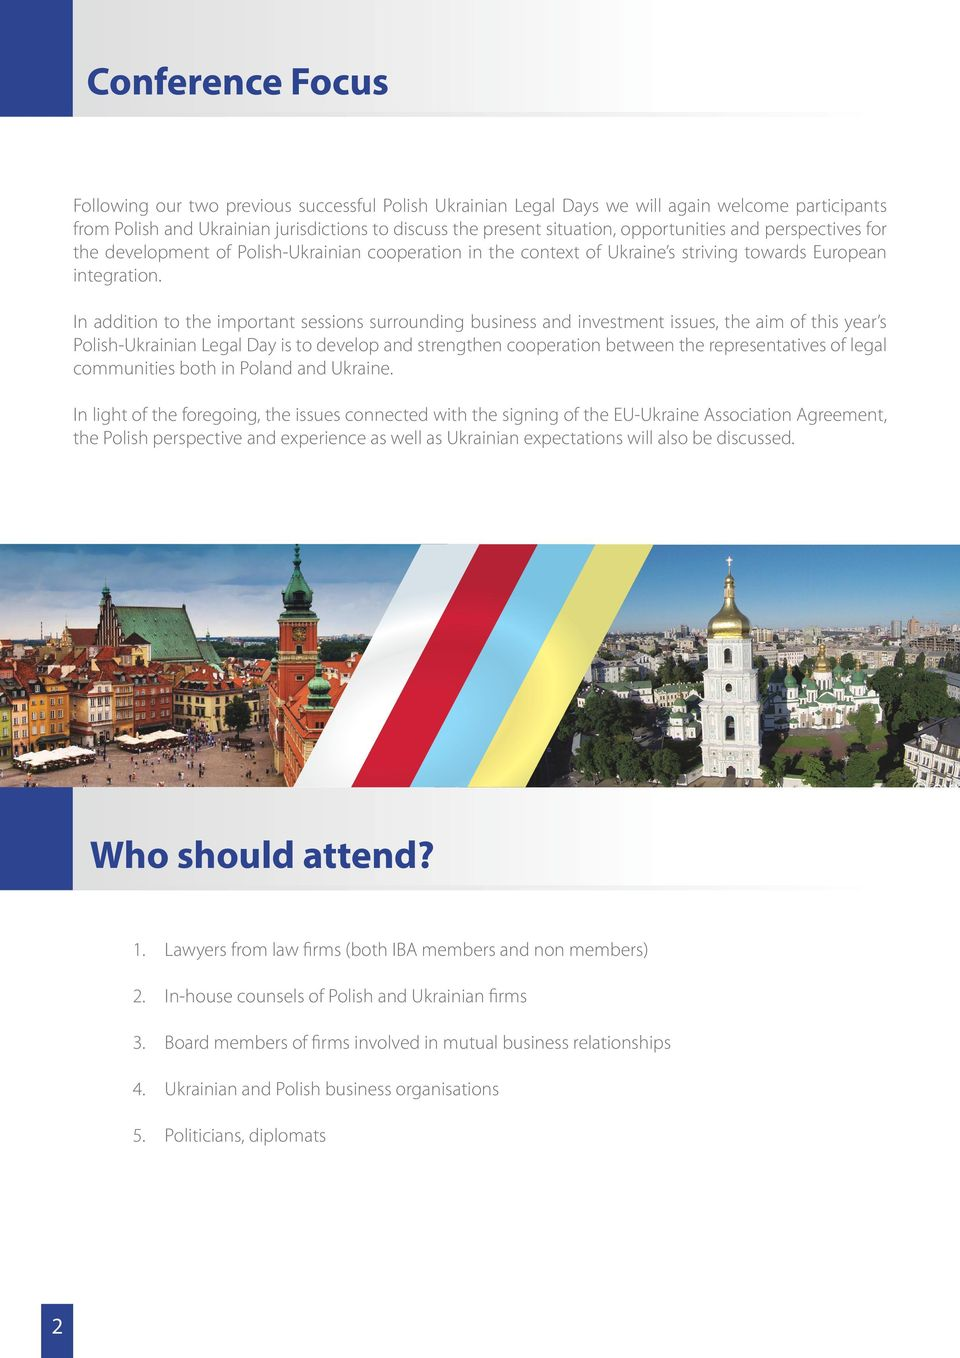 In addition to the important sessions surrounding business and investment issues, the aim of this year s Polish-Ukrainian Legal Day is to develop and strengthen cooperation between the